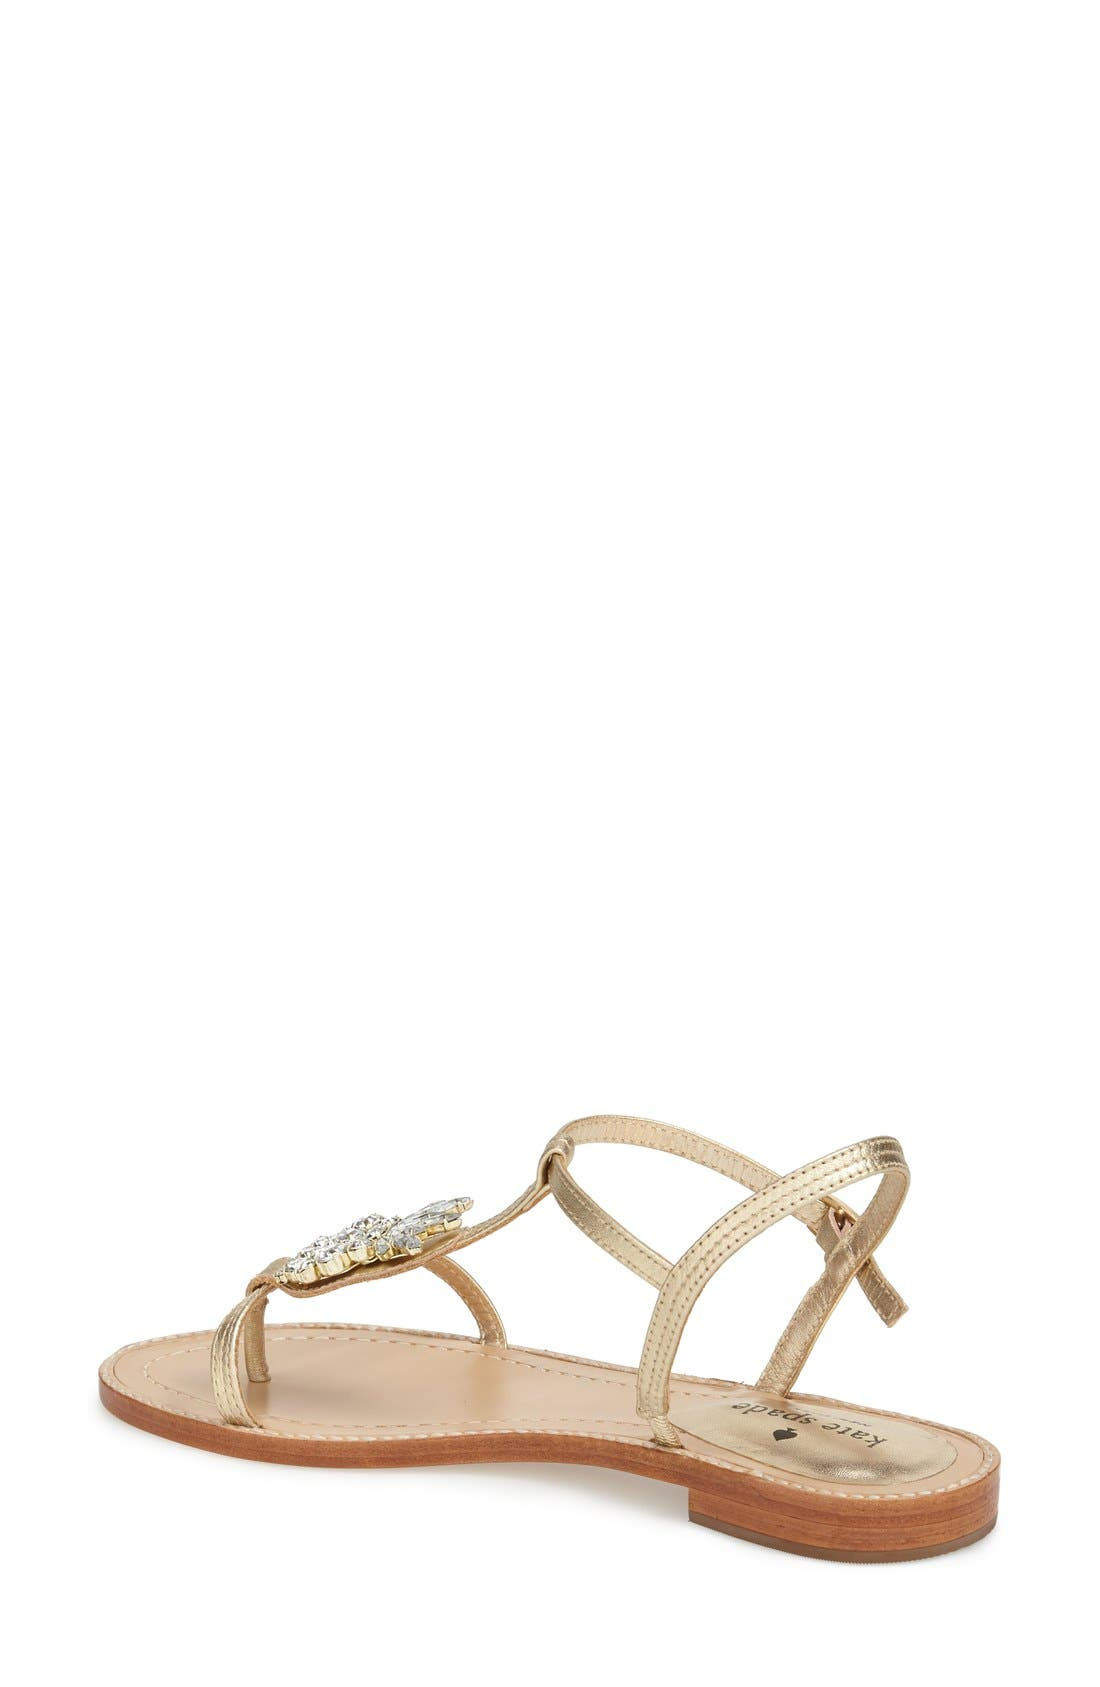 Alternate Image 2  - kate spade new york 'serafina' crystal pineapple flat sandal (Women)